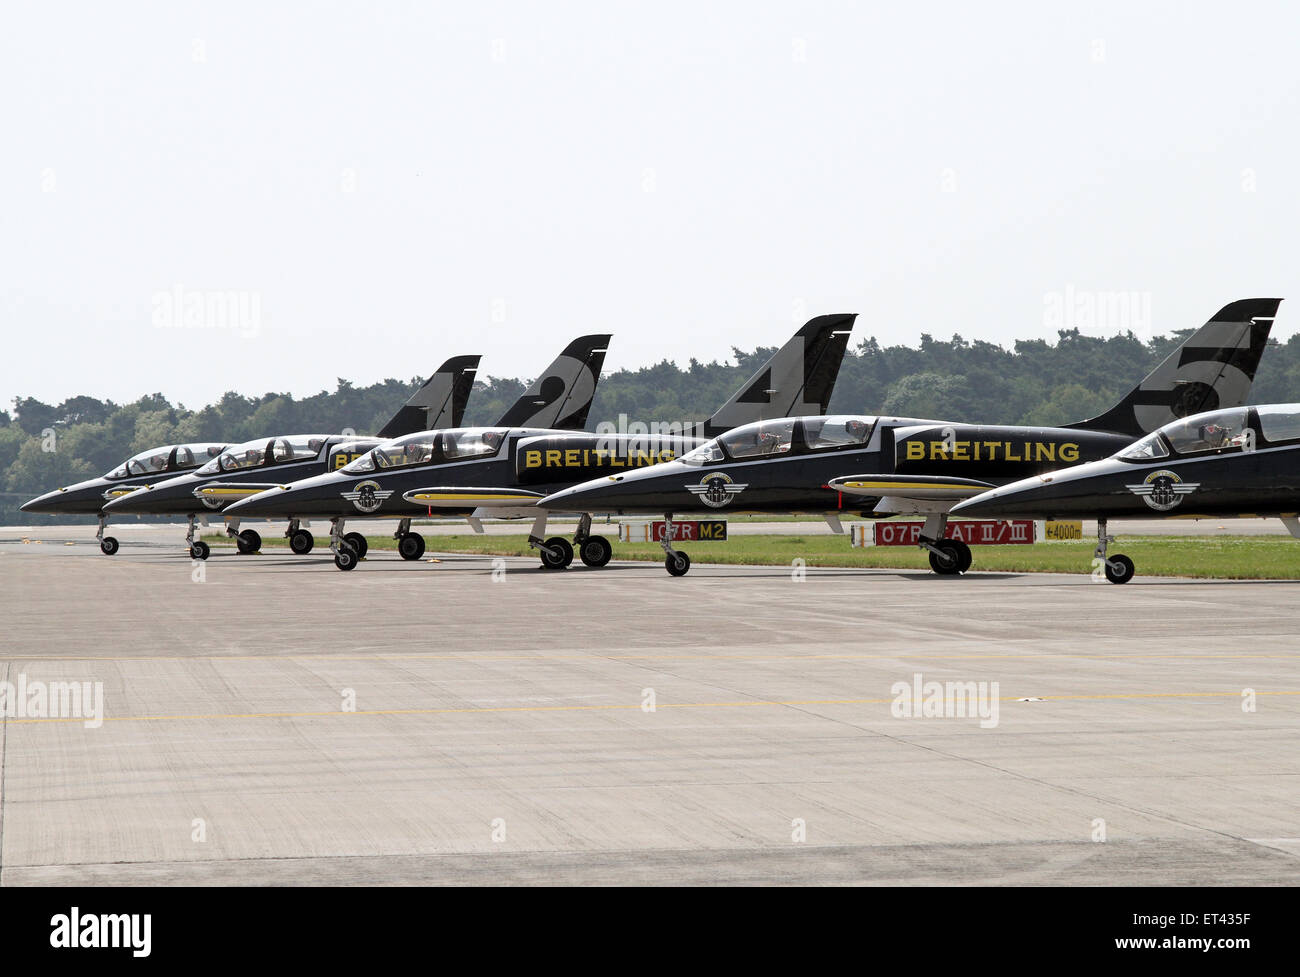 Schoenefeld, Germany, aircraft aerobatic team Breitling Jet Team - Stock Image